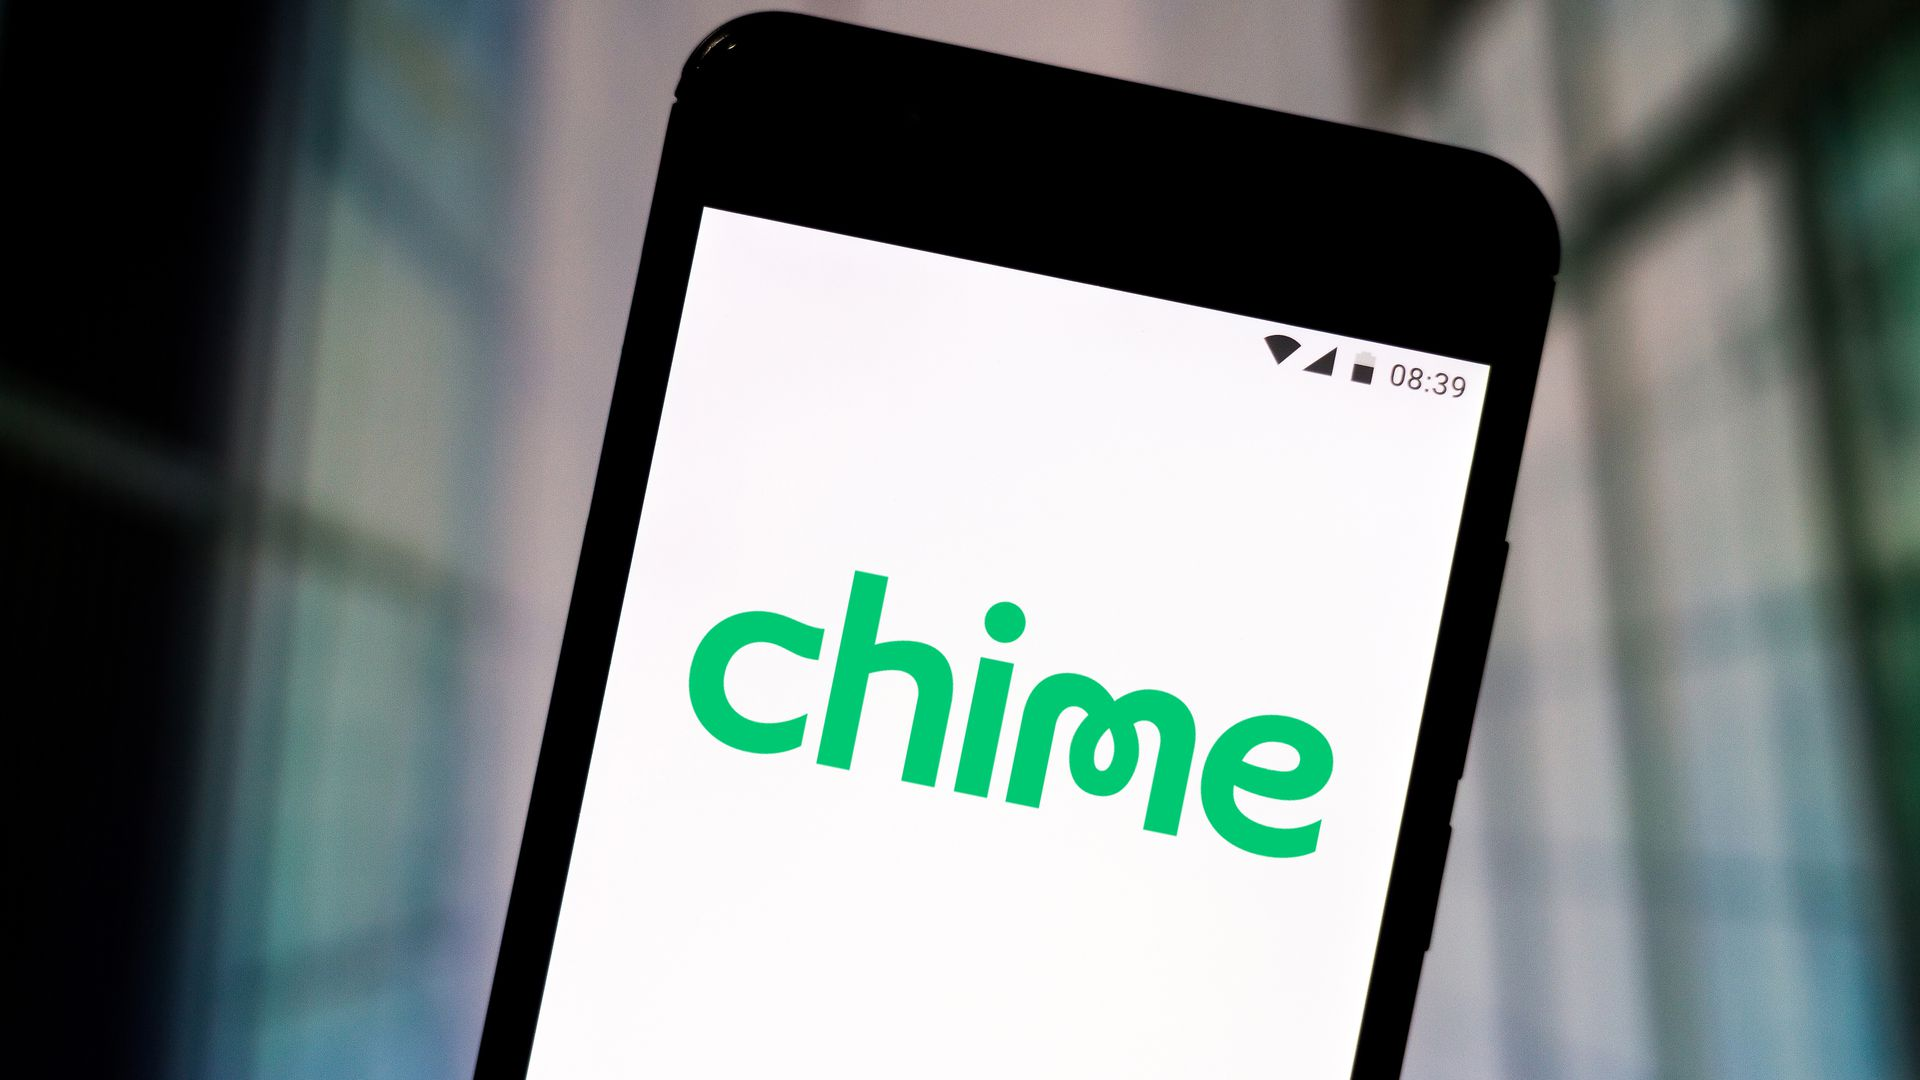 Mobile banking startup Chime raising big funding round